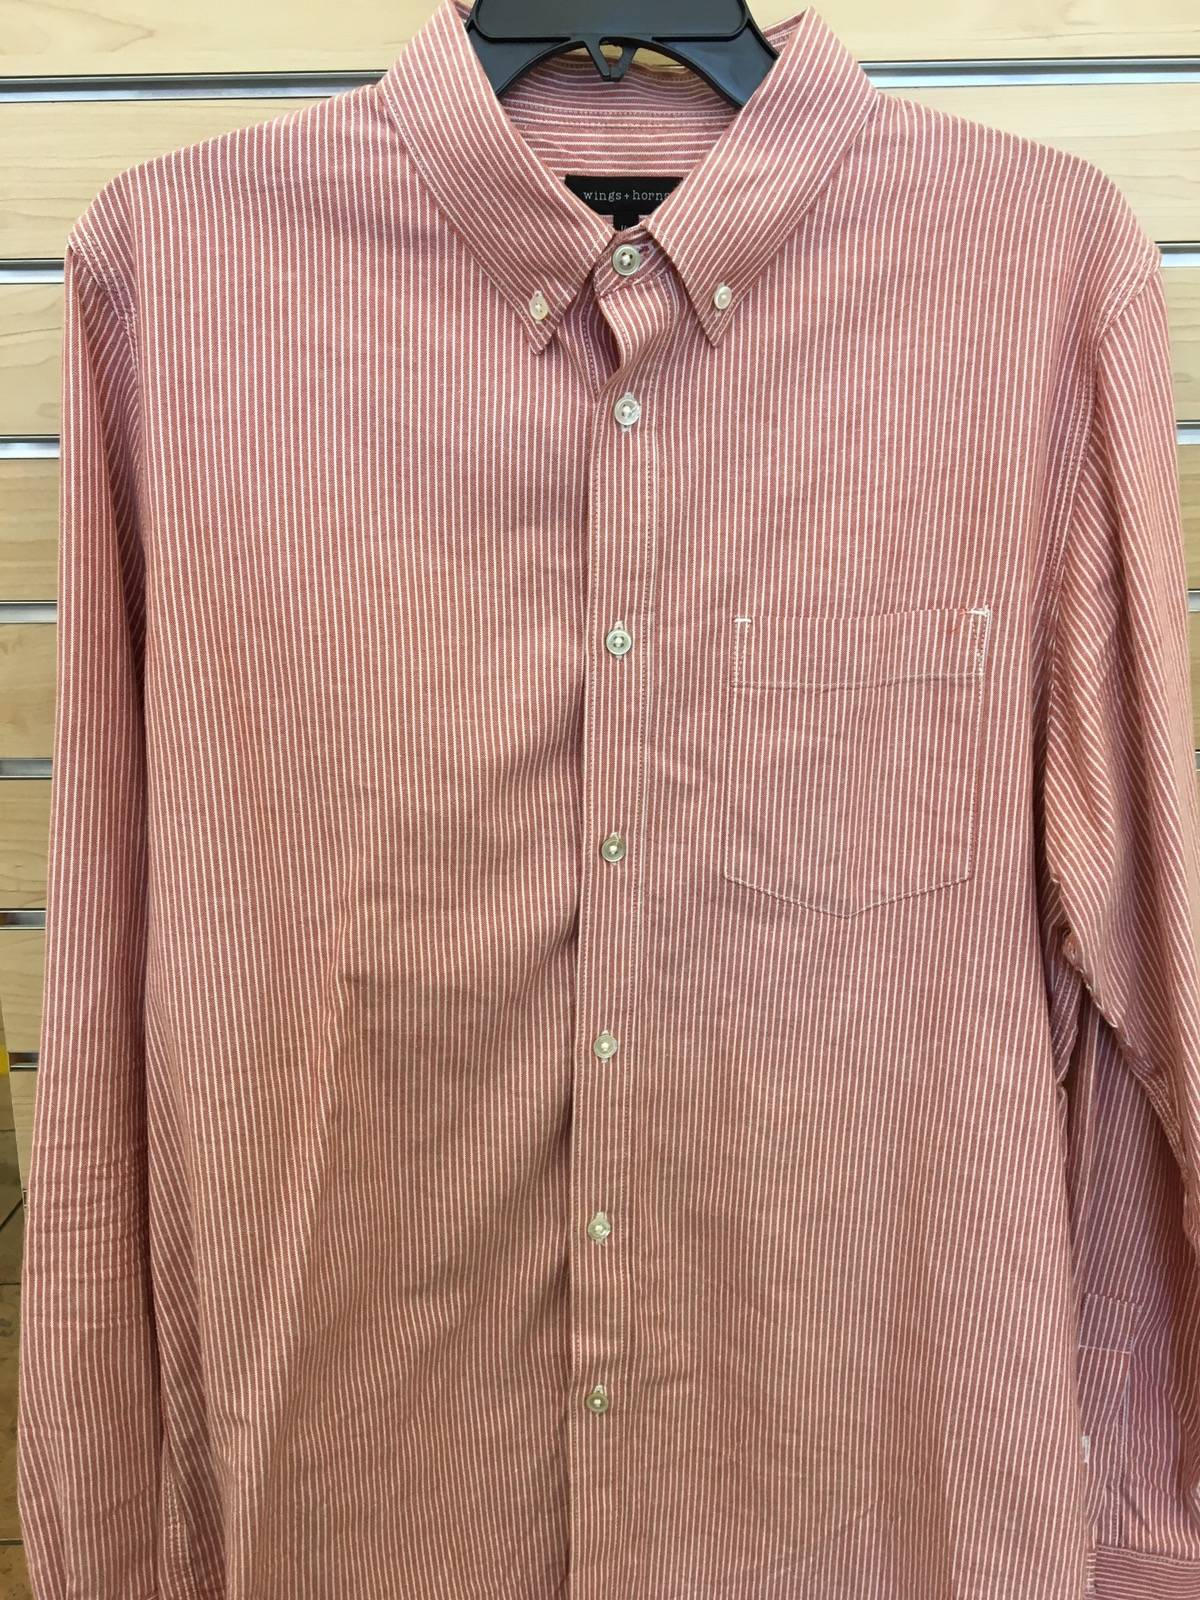 Wings Horns Wings Horns Long Sleeve Button Up Size L Shirts